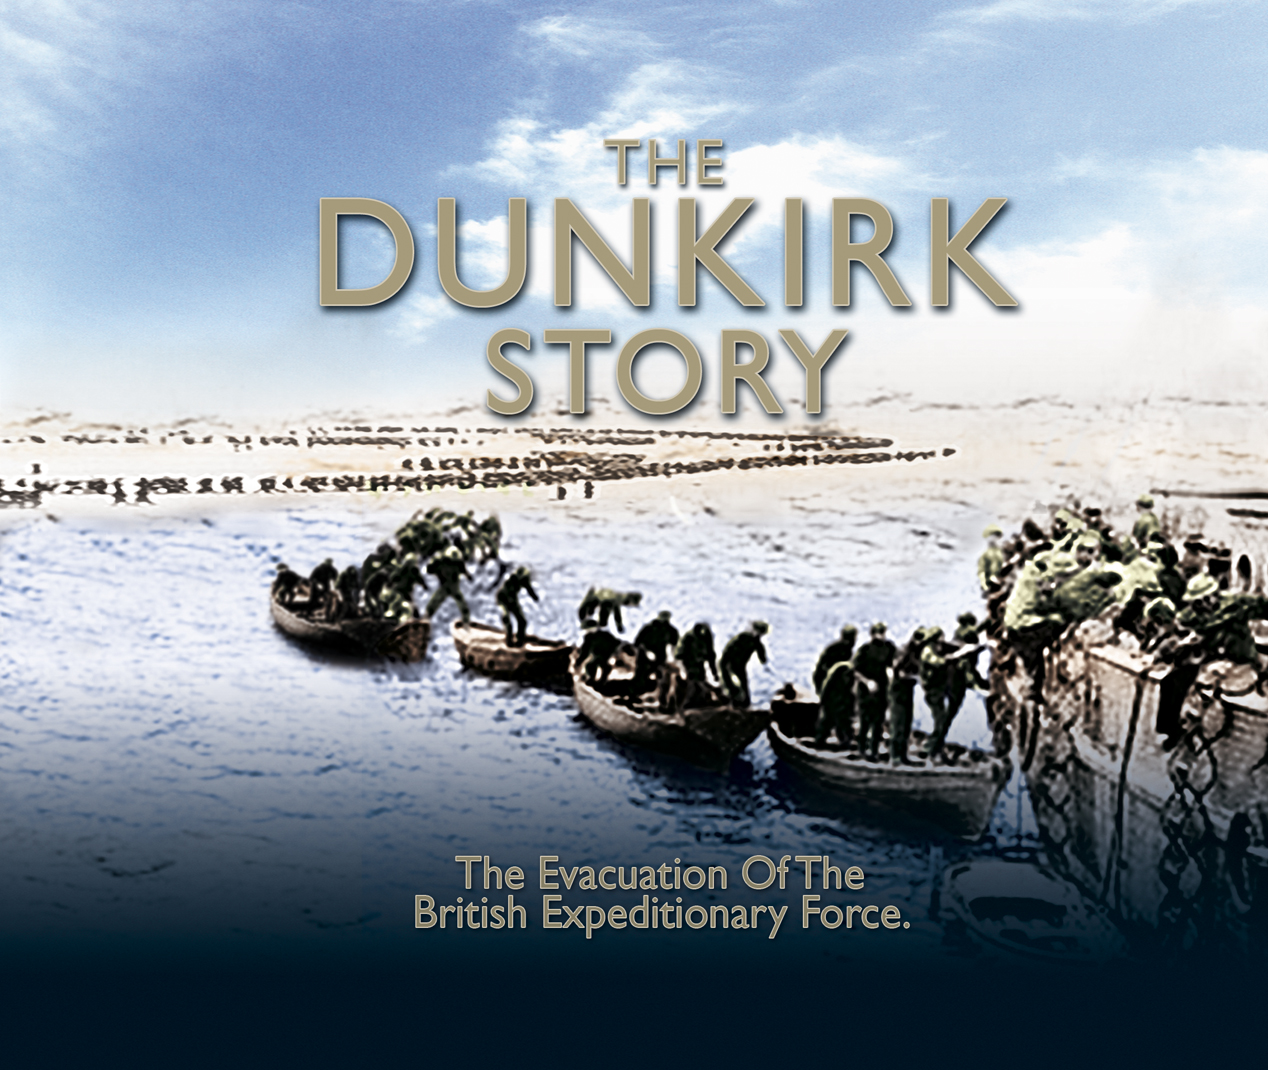 The Dunkirk Story: British Evacuation